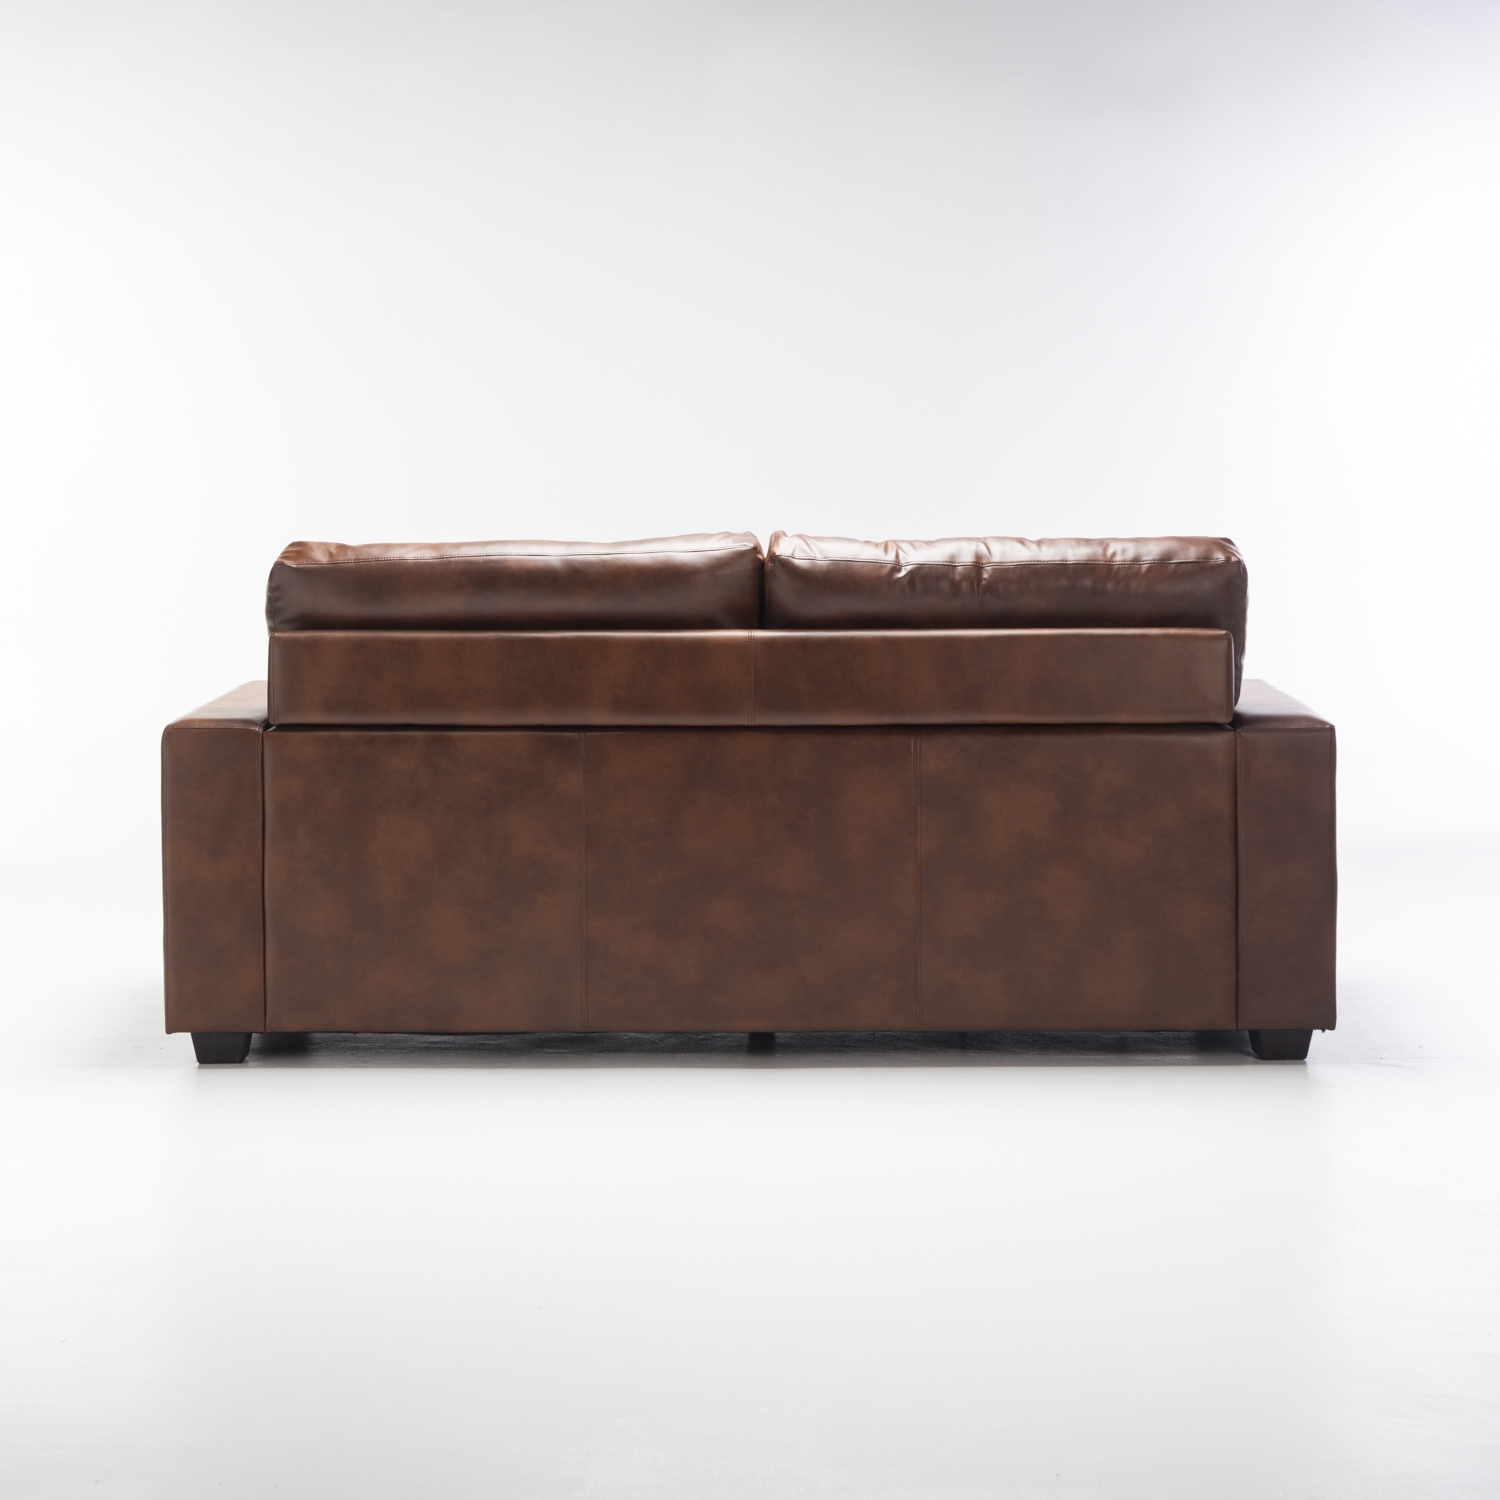 ASTRA LEATHER TOUCH 3 SEATER